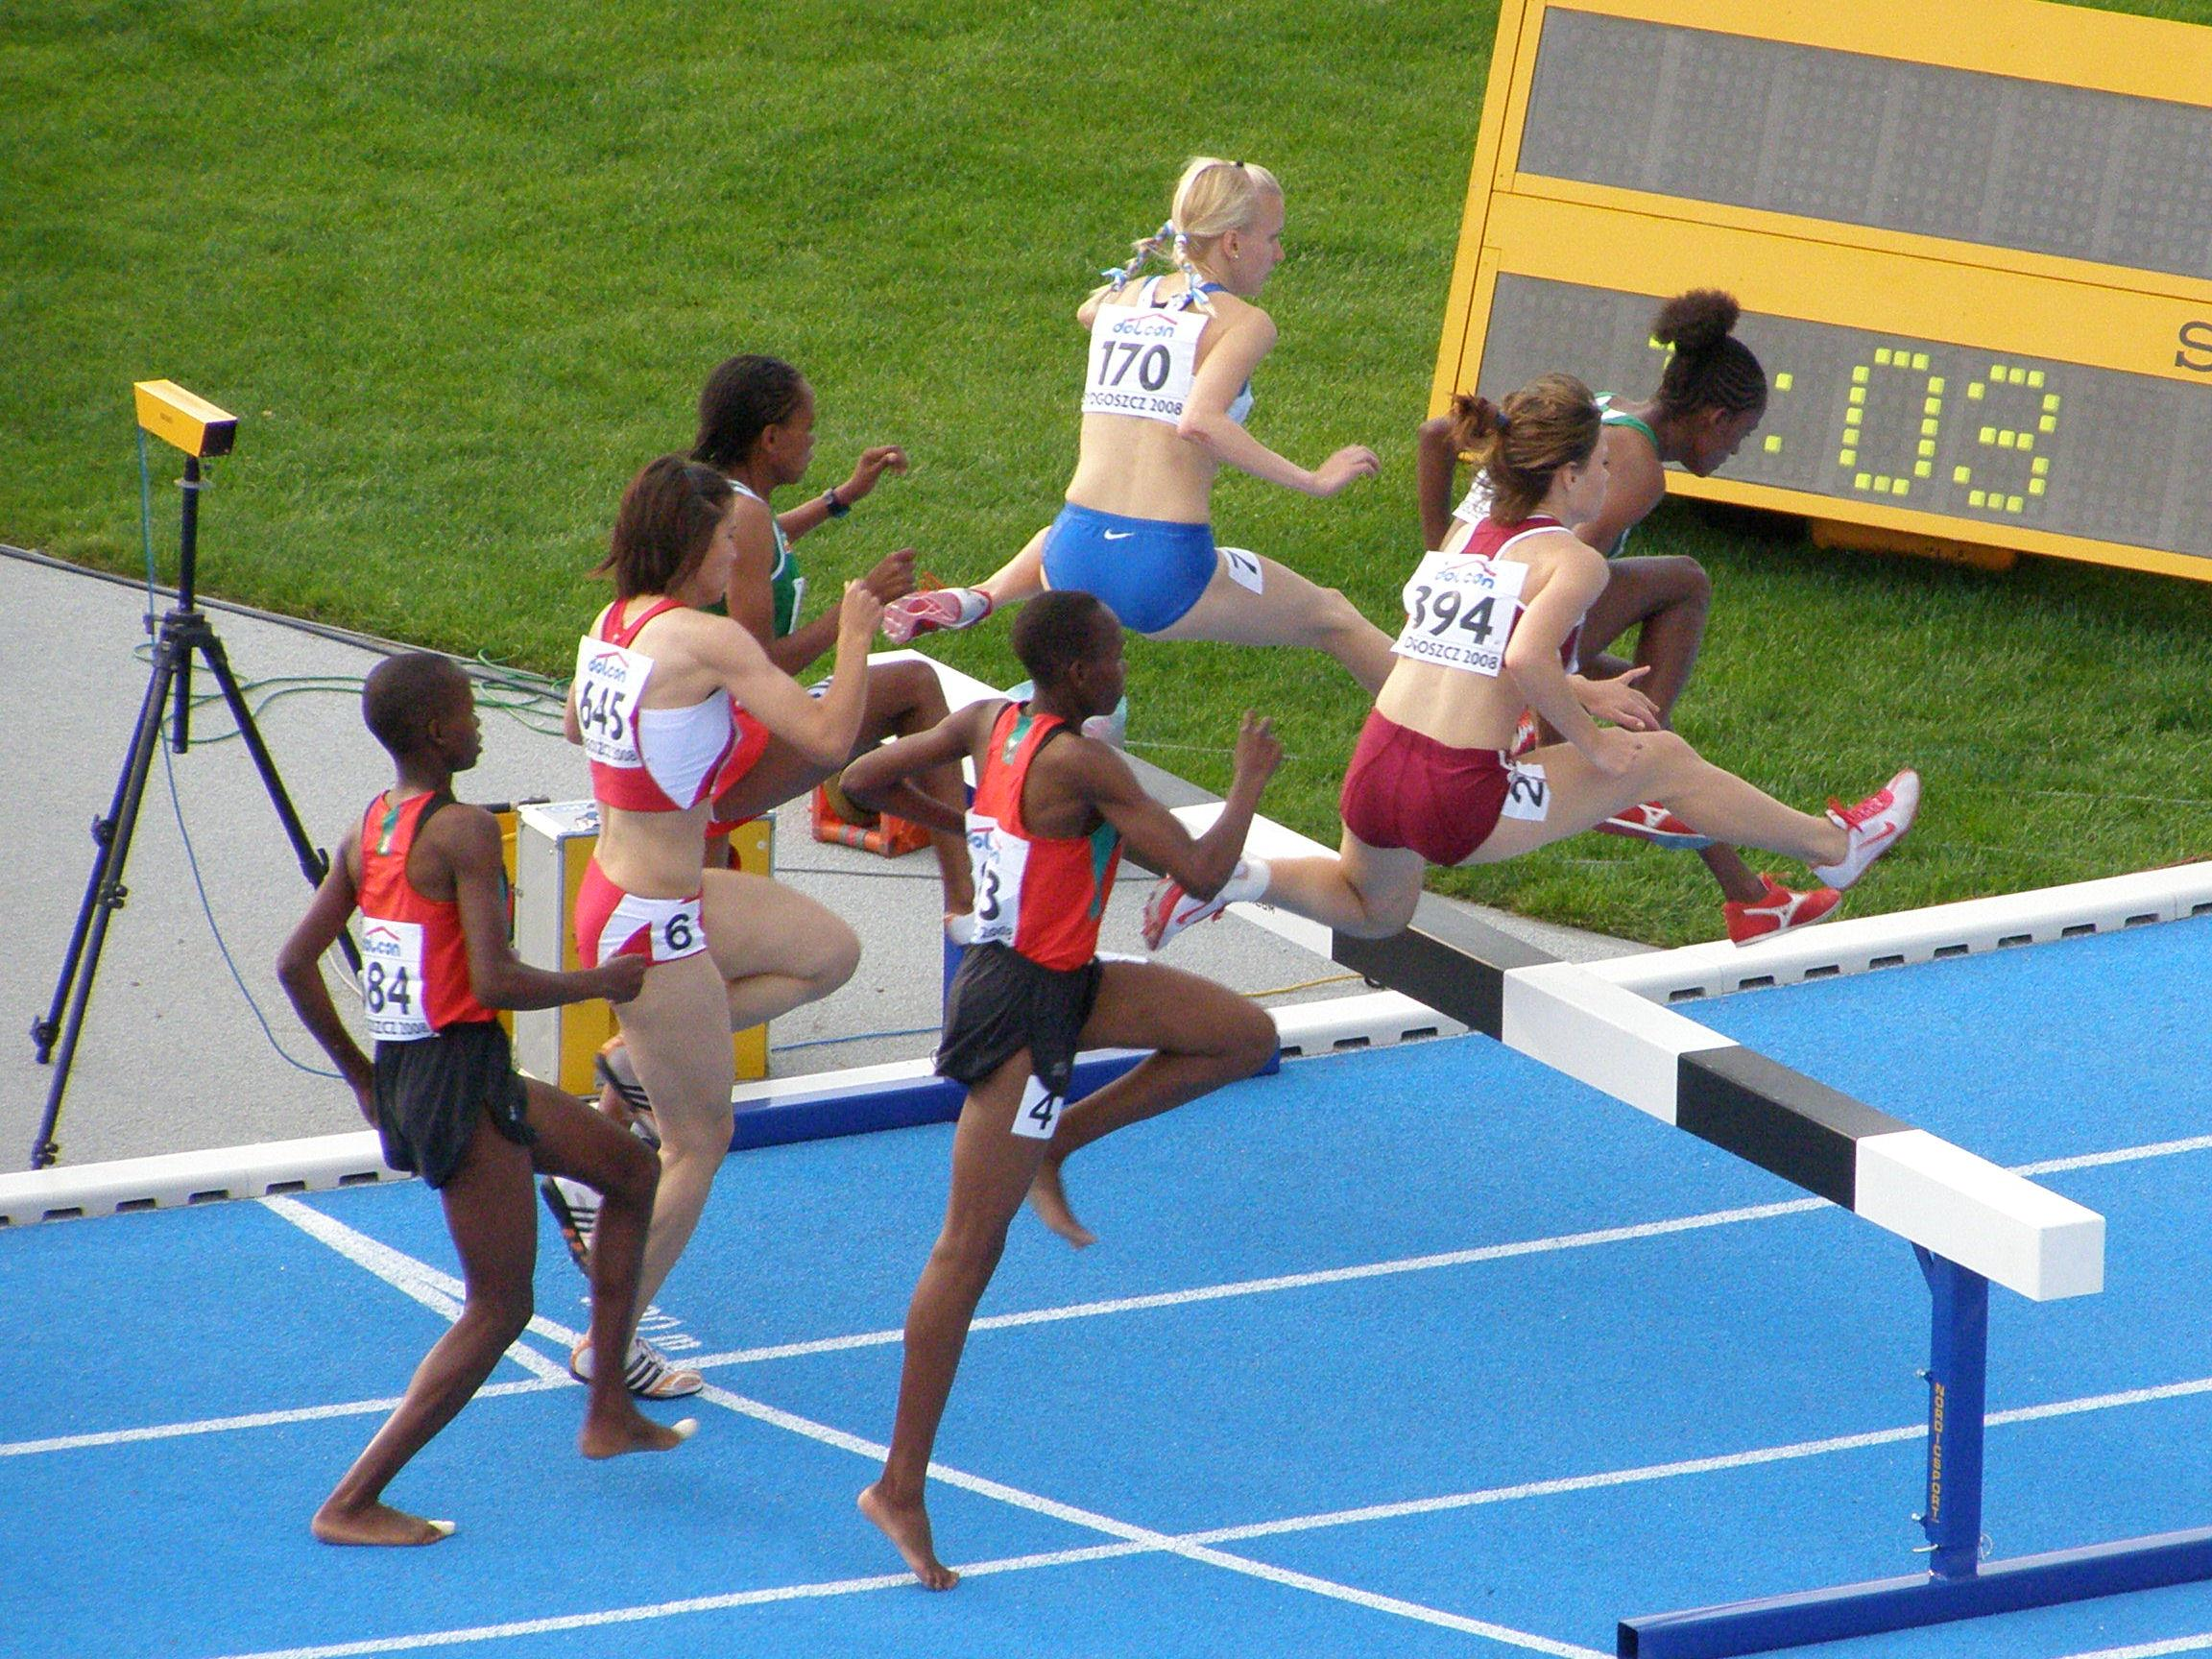 Steeplechase (athletics) - Wikipedia, the free encyclopedia